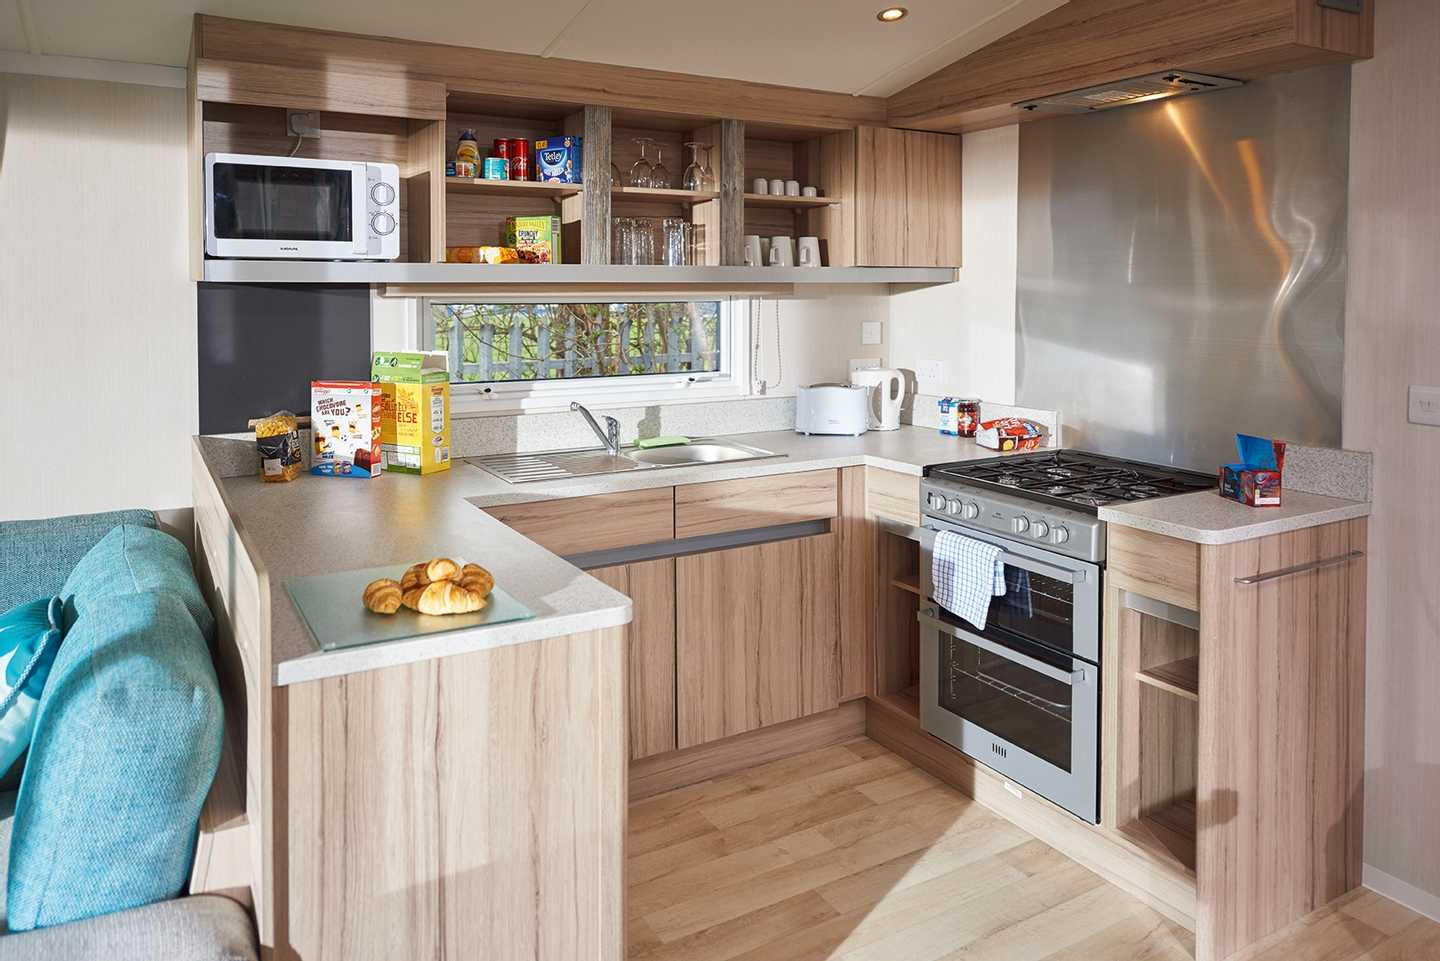 A newer Deluxe caravan kitchen with cooker, microwave, kettle and toaster